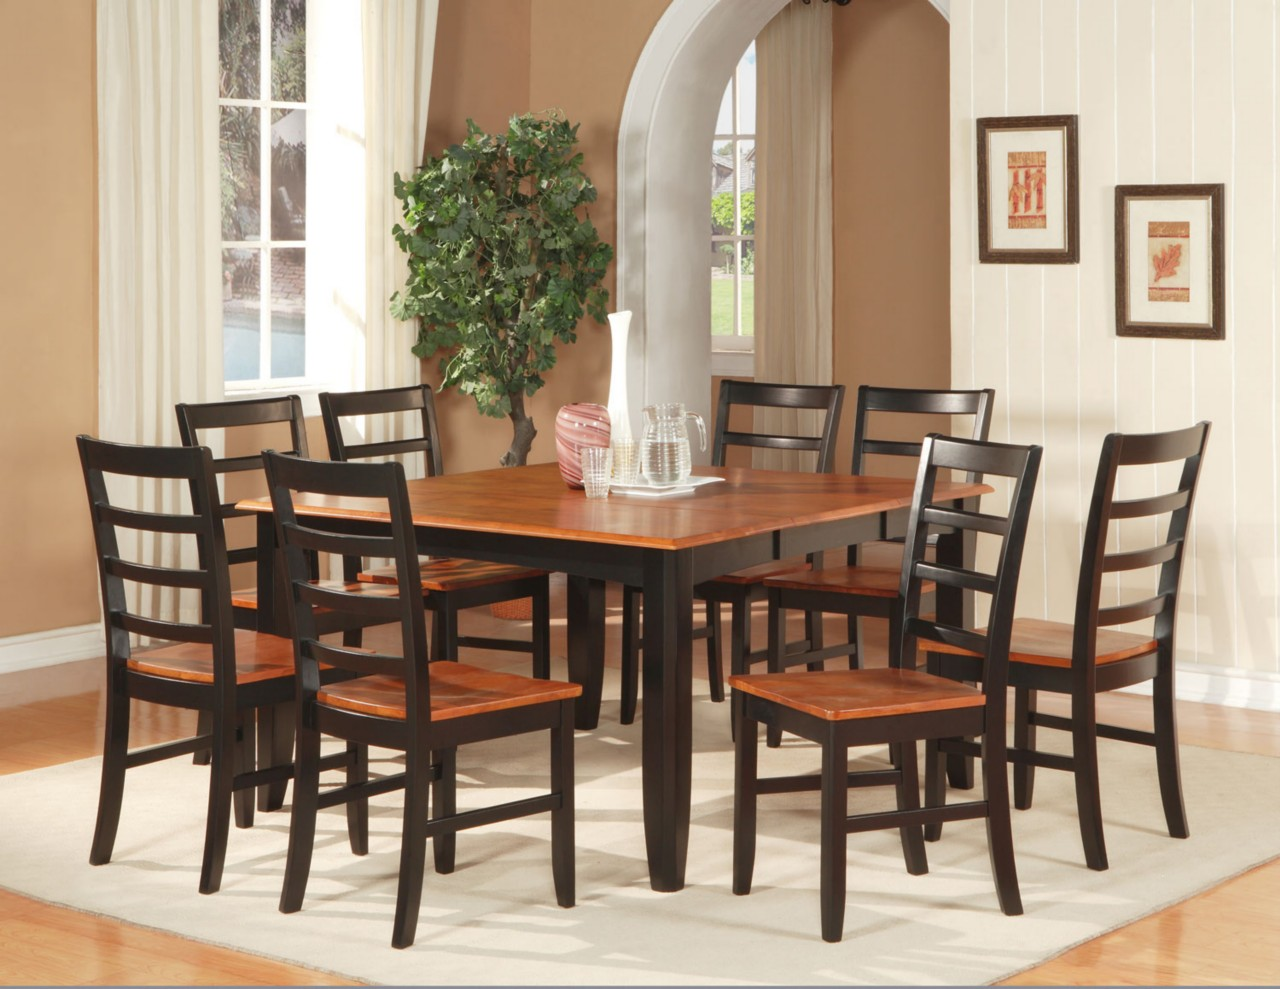 dining room tables sets. kitchen dining furniture walmart com